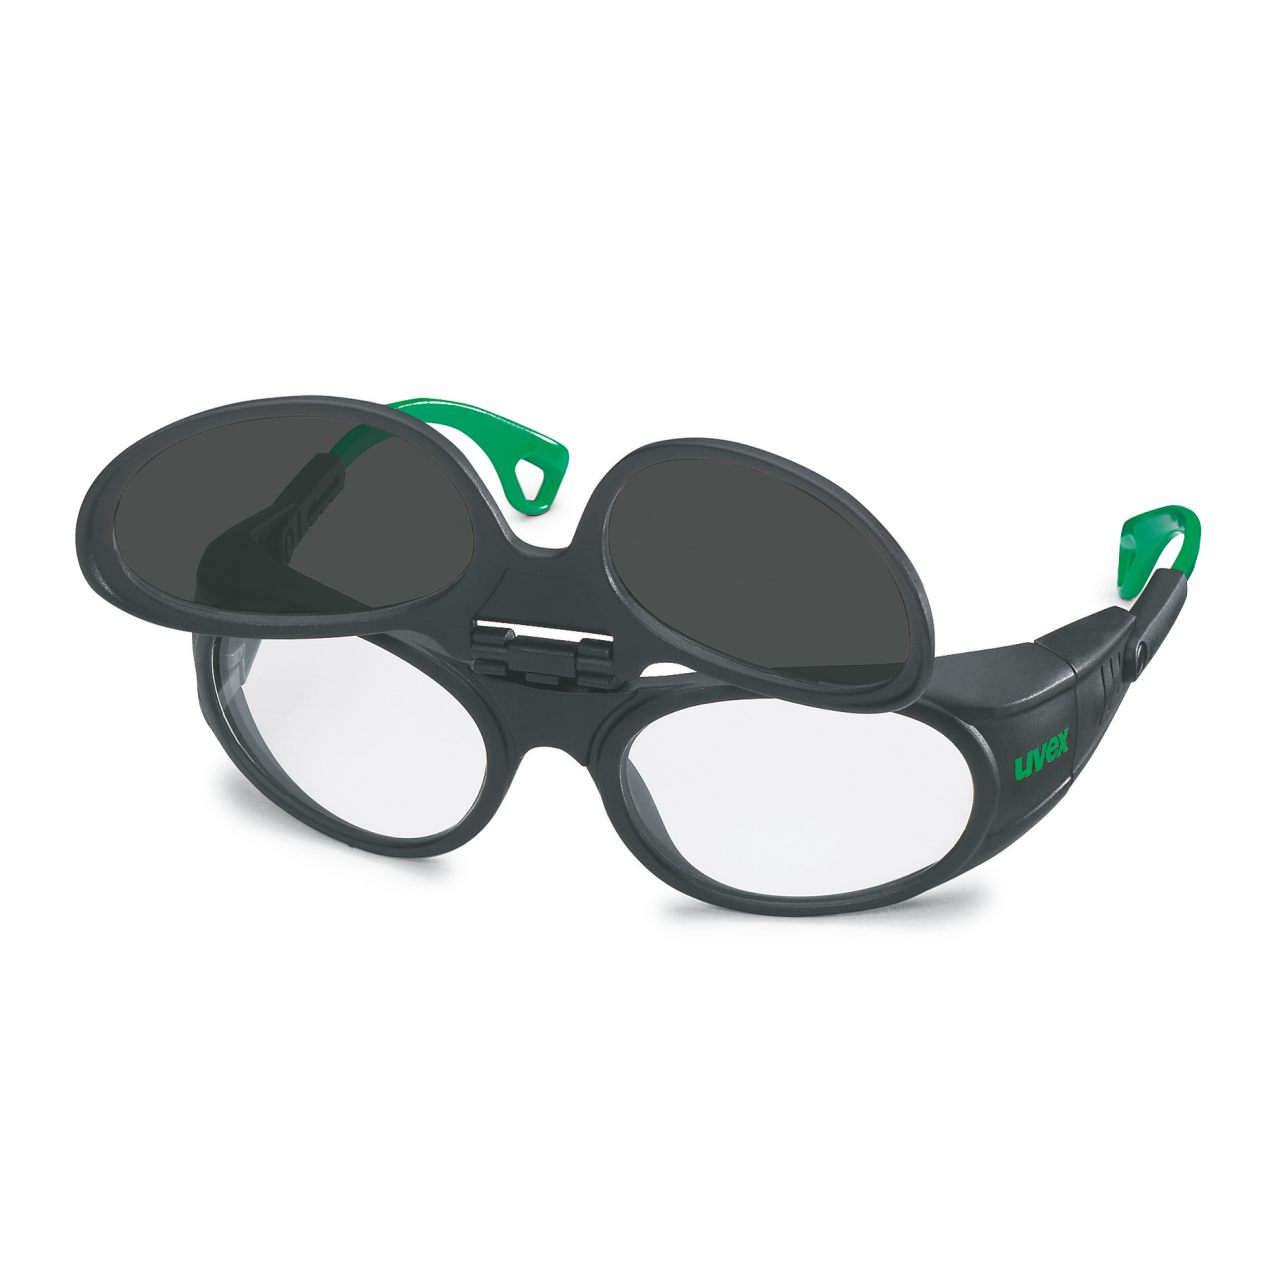 b6b6bb8405 uvex 9104 welding safety spectacles